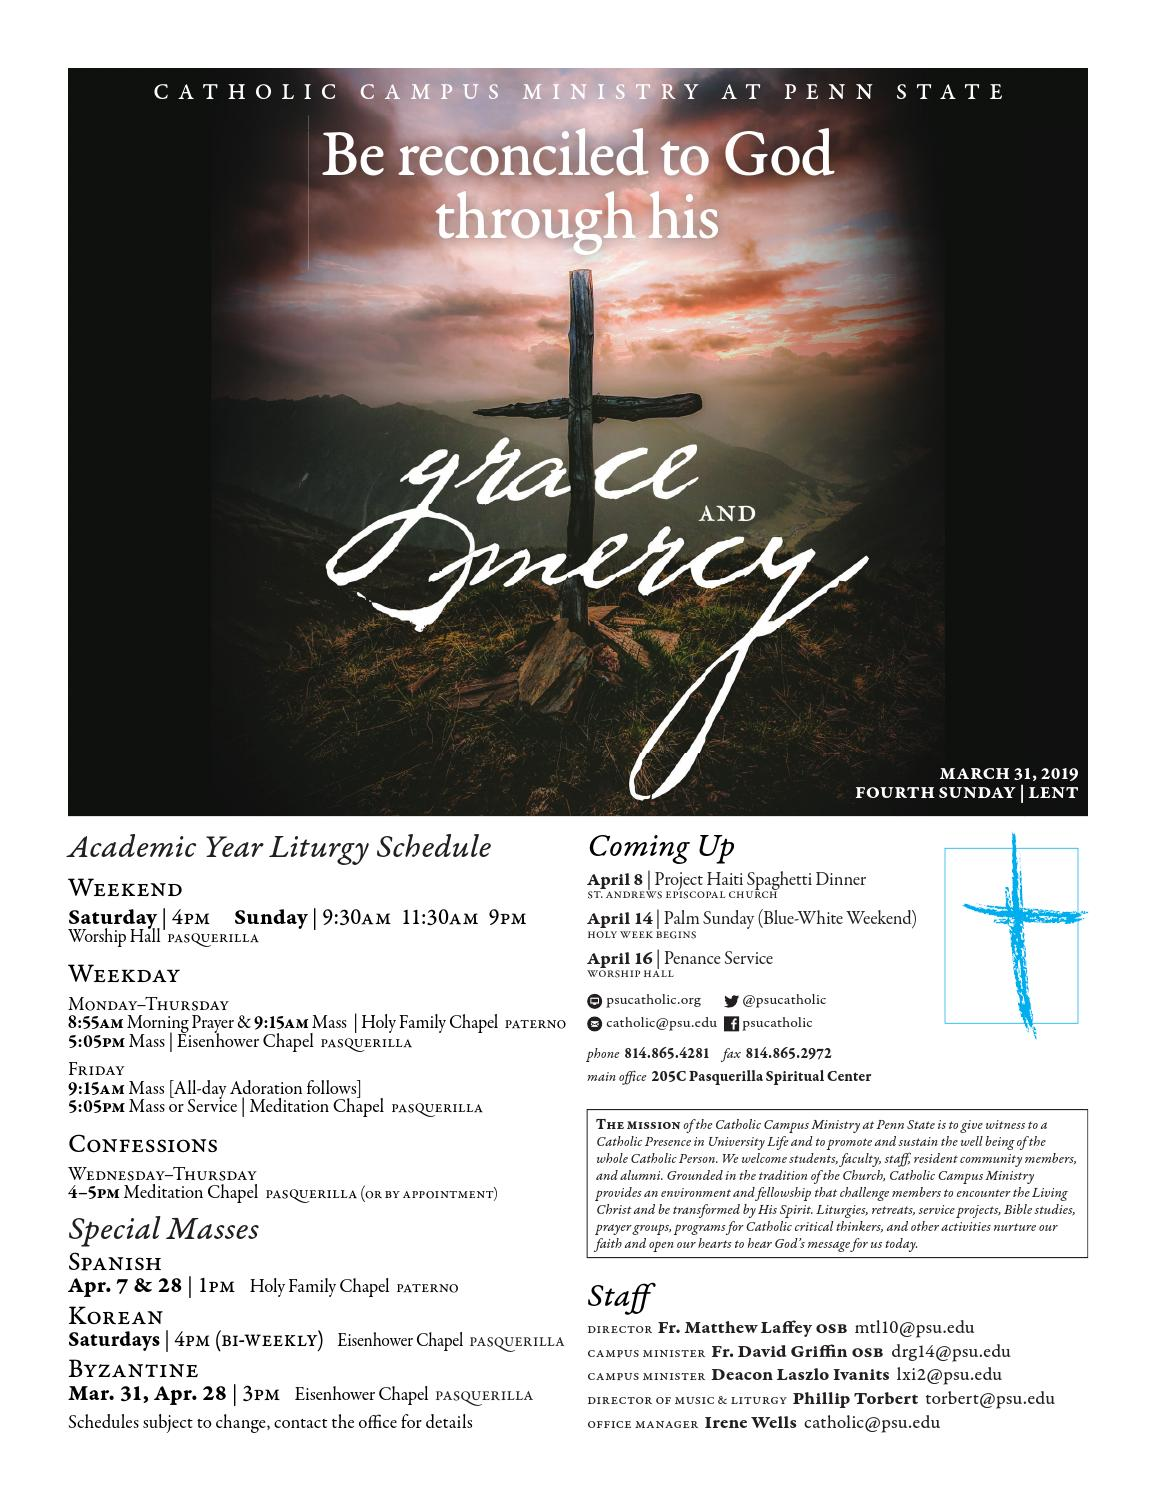 Bulletin for 31 March 2019 (Fourth Sunday / Lent) by Penn